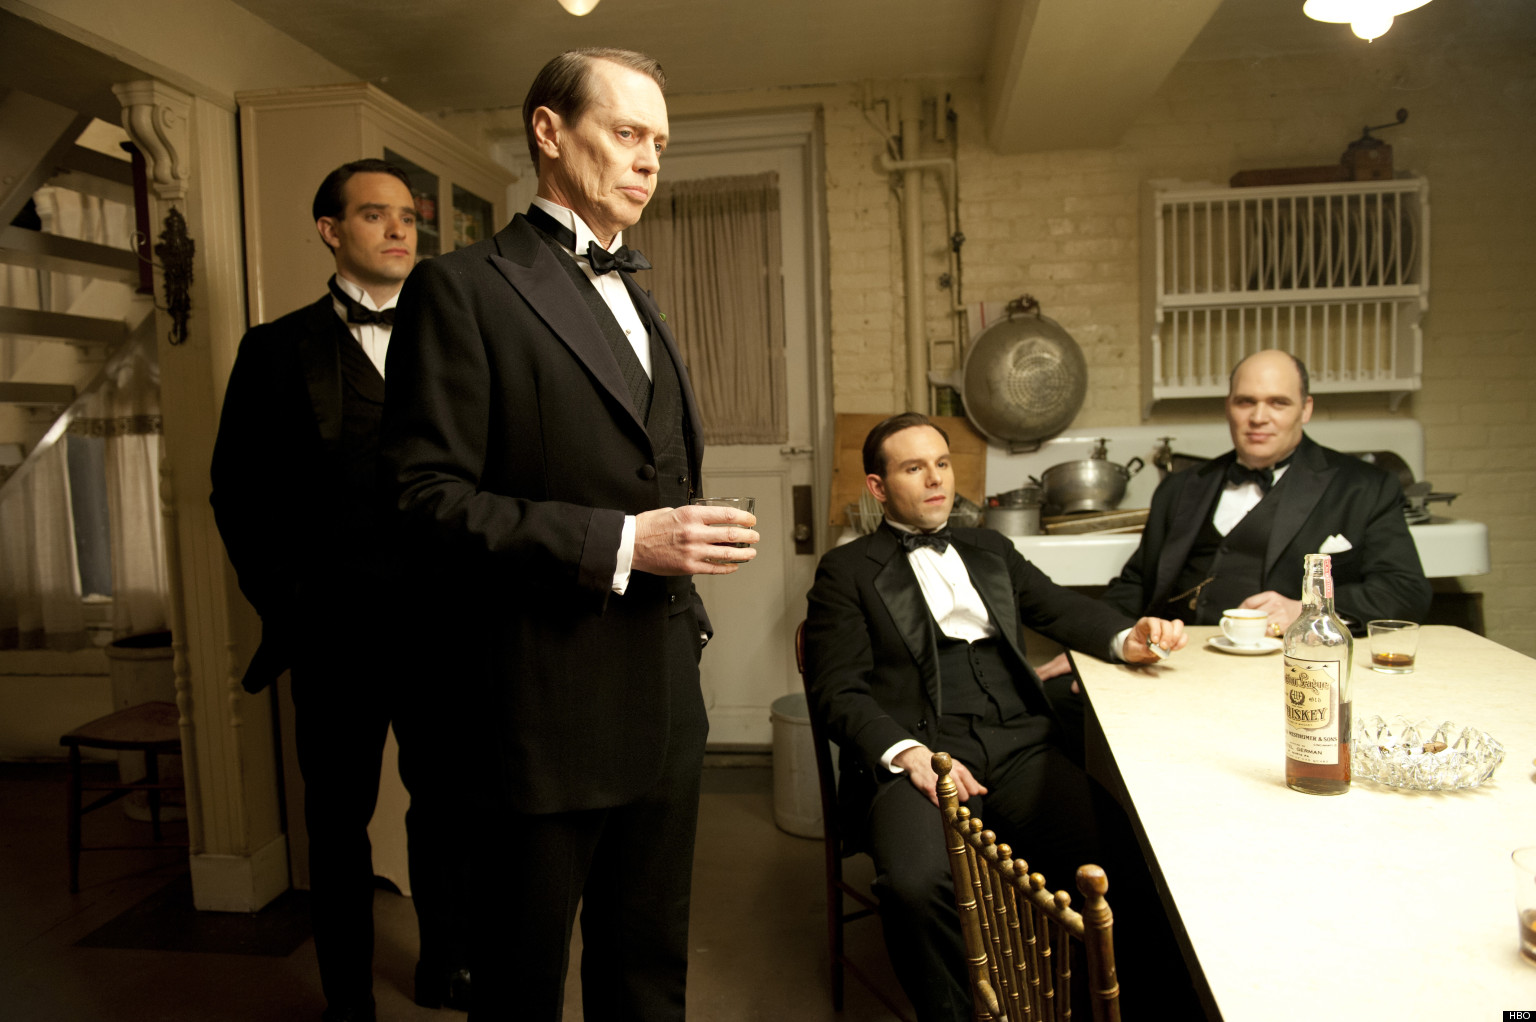 The Feminism and Anti-Racism of 'Boardwalk Empire' (And the Critics Who Don't Get It) | Bitch Flicks